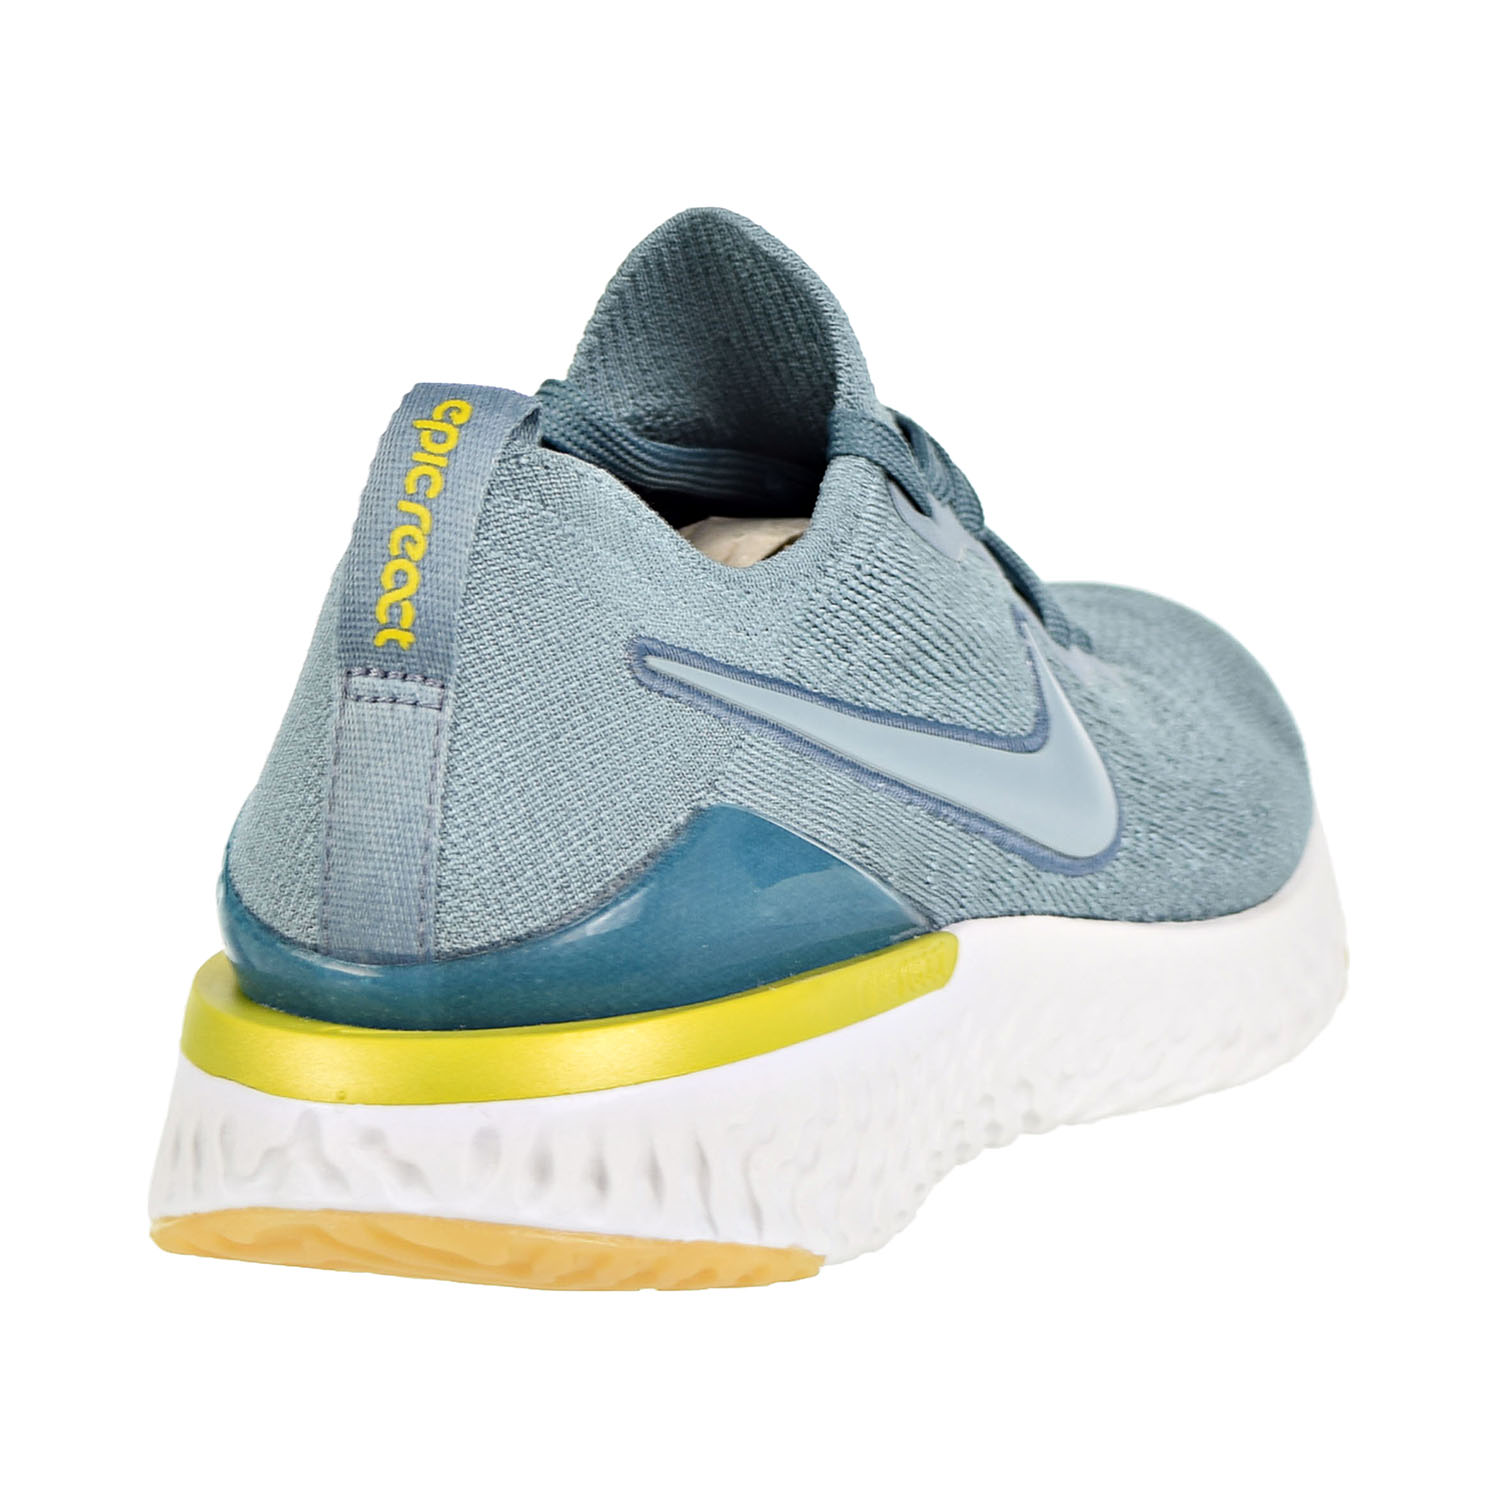 800232dd2354f Nike Epic React Flyknit 2 (GS) Big Kids  Running Shoes Aviator Grey Aviator  Grey aq3243-005